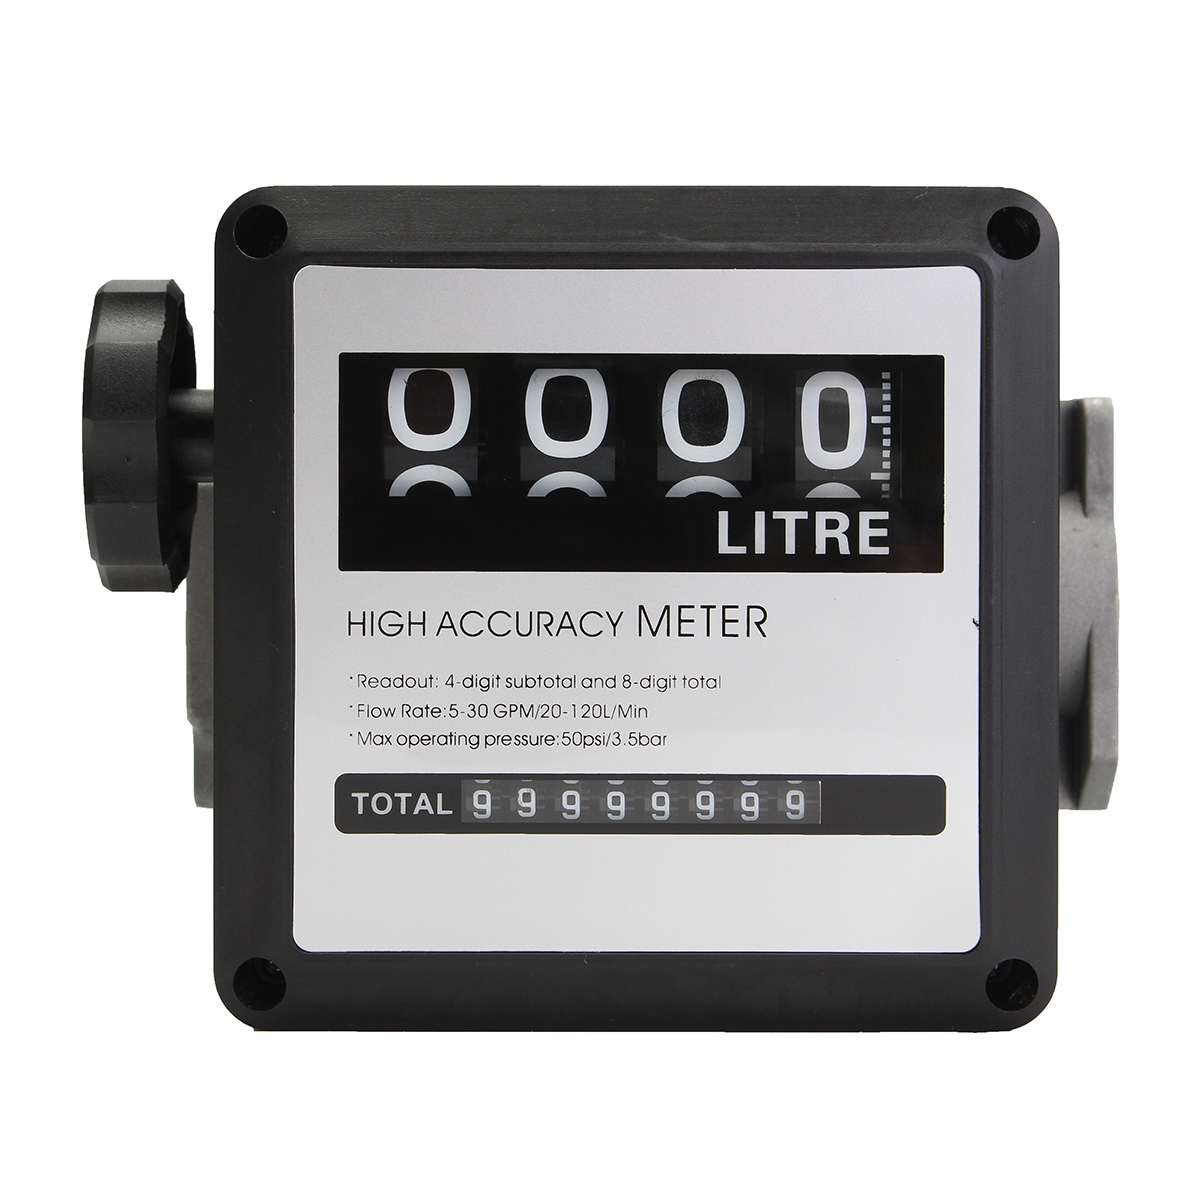 High Accuracy 4 Digital Diesel-Gas Fuel Oil Flow Meter Dispenser Counter Gauge 5-30 GMP/20-120L/Min With Flexible HorizontalHigh Accuracy 4 Digital Diesel-Gas Fuel Oil Flow Meter Dispenser Counter Gauge 5-30 GMP/20-120L/Min With Flexible Horizontal